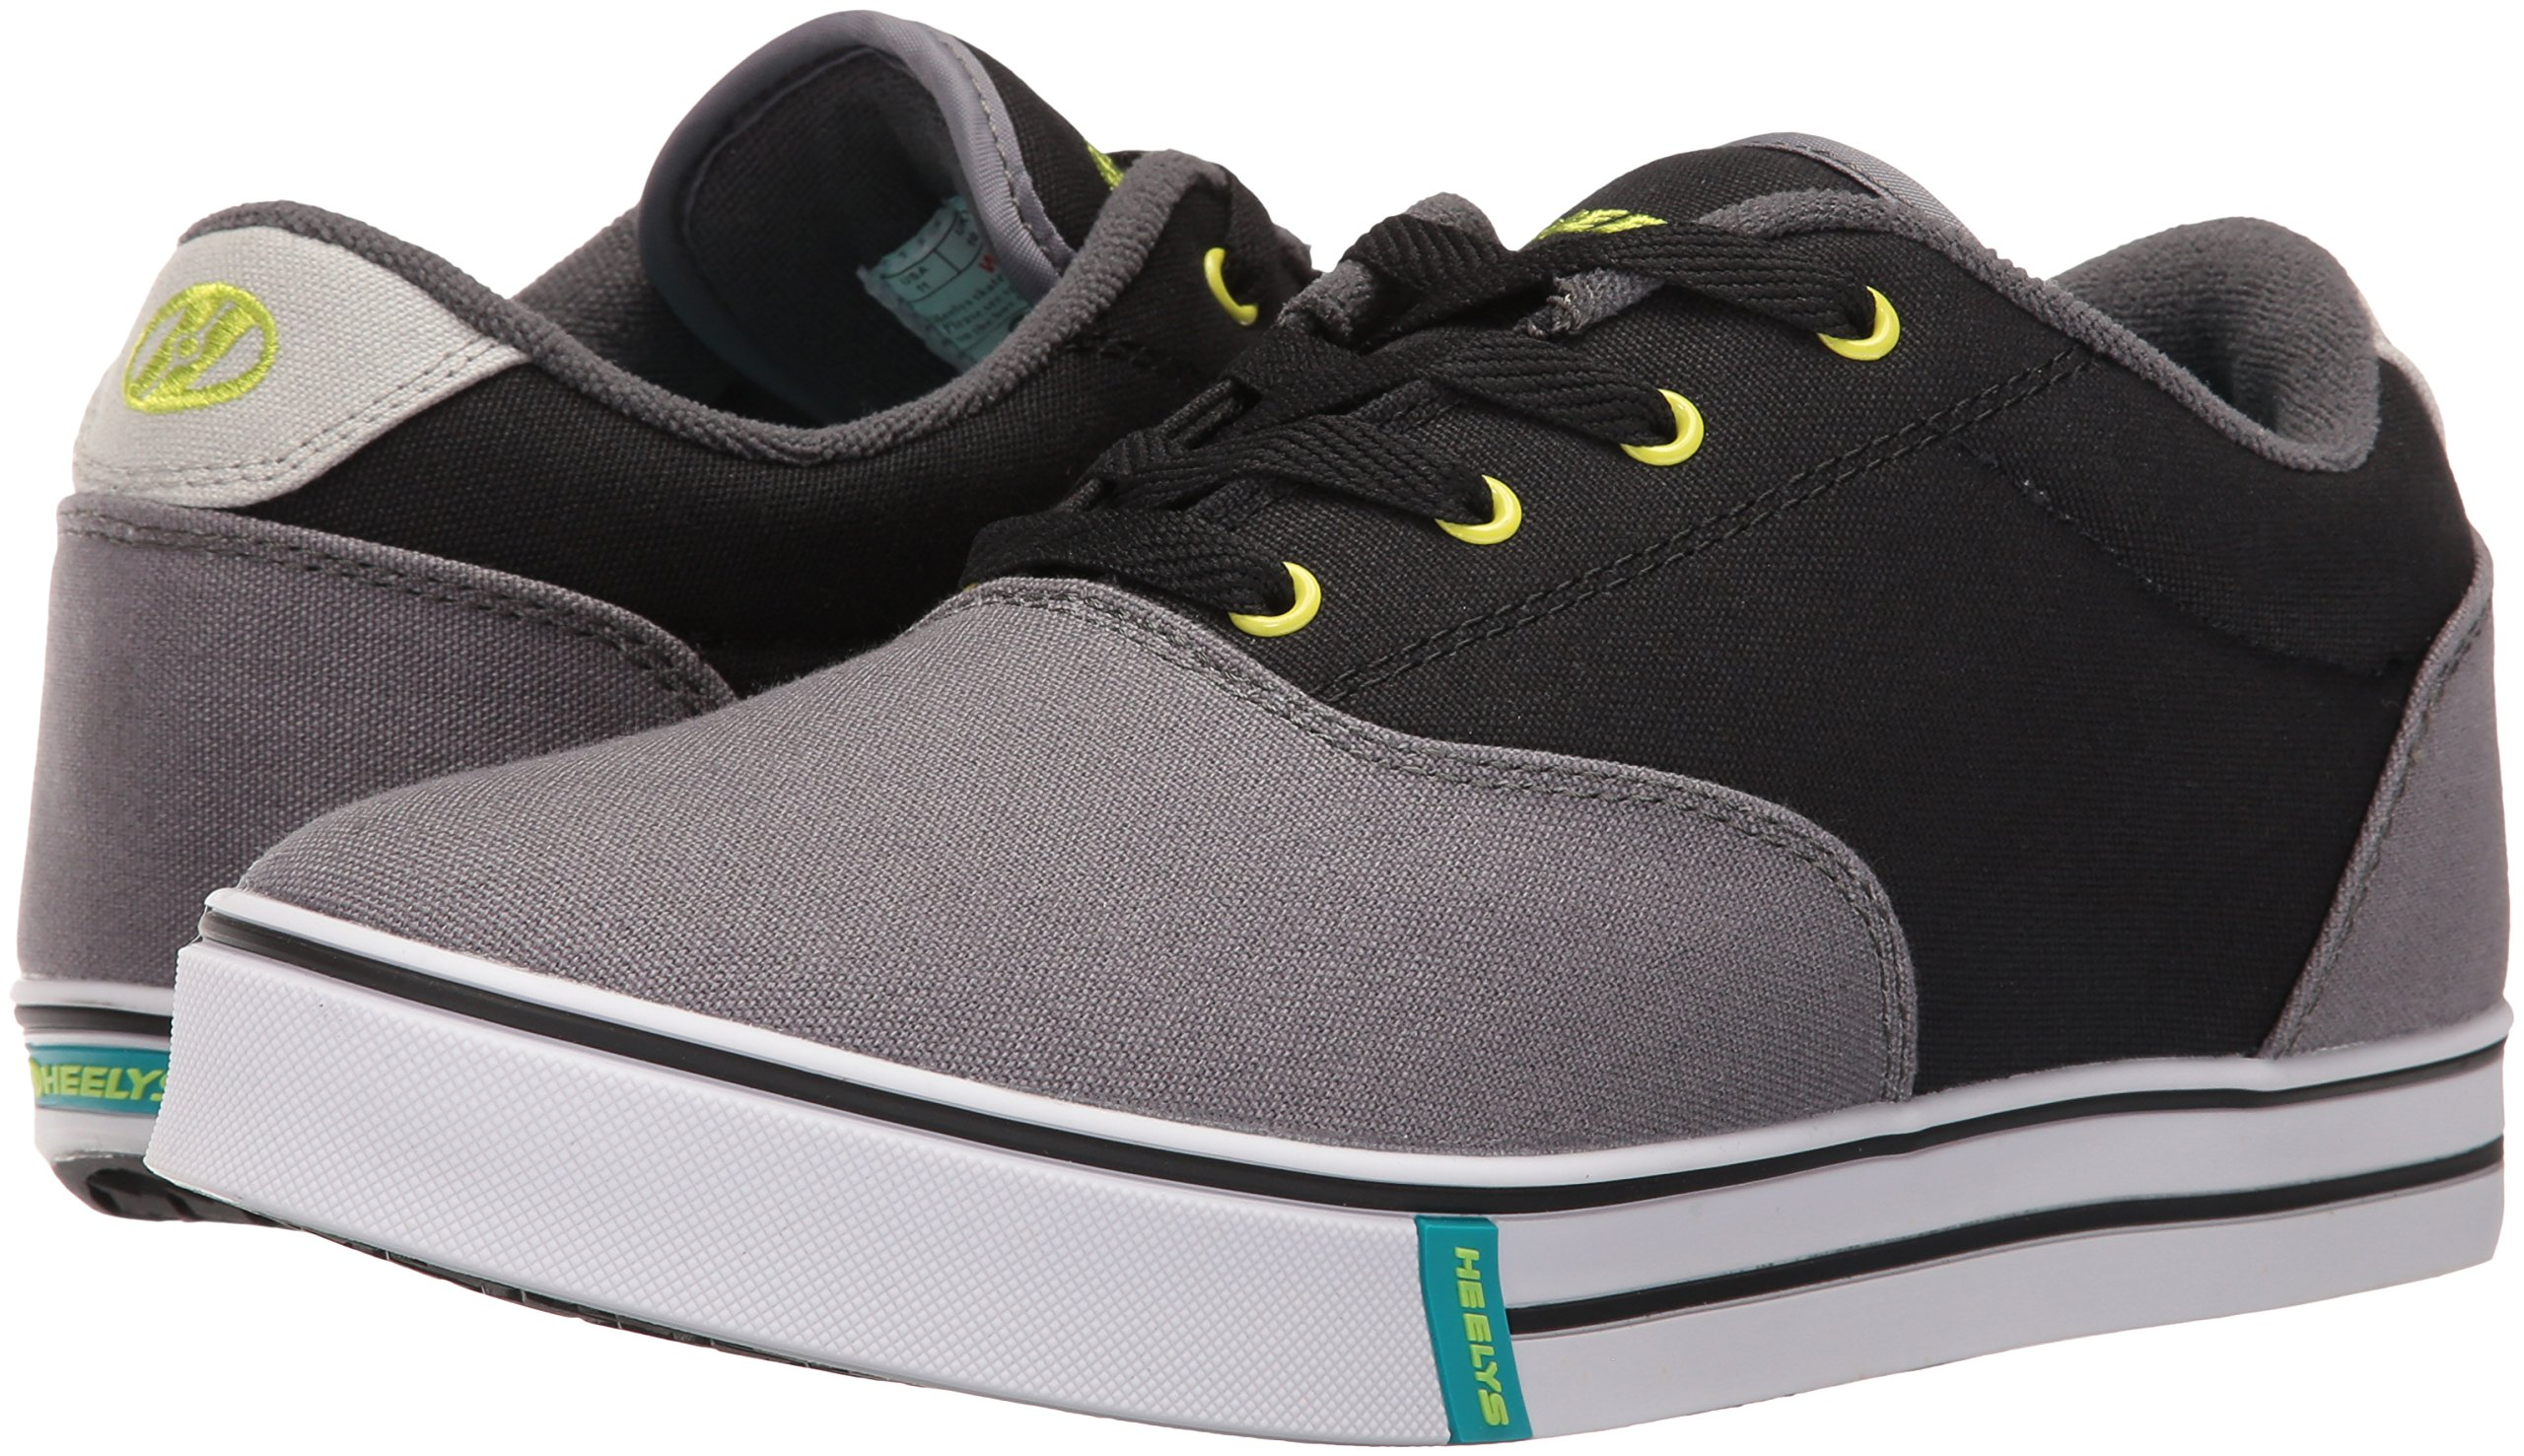 Heelys Men's Launch Fashion Sneaker Charcoal/Black/Lime 10 M US by Heelys (Image #6)